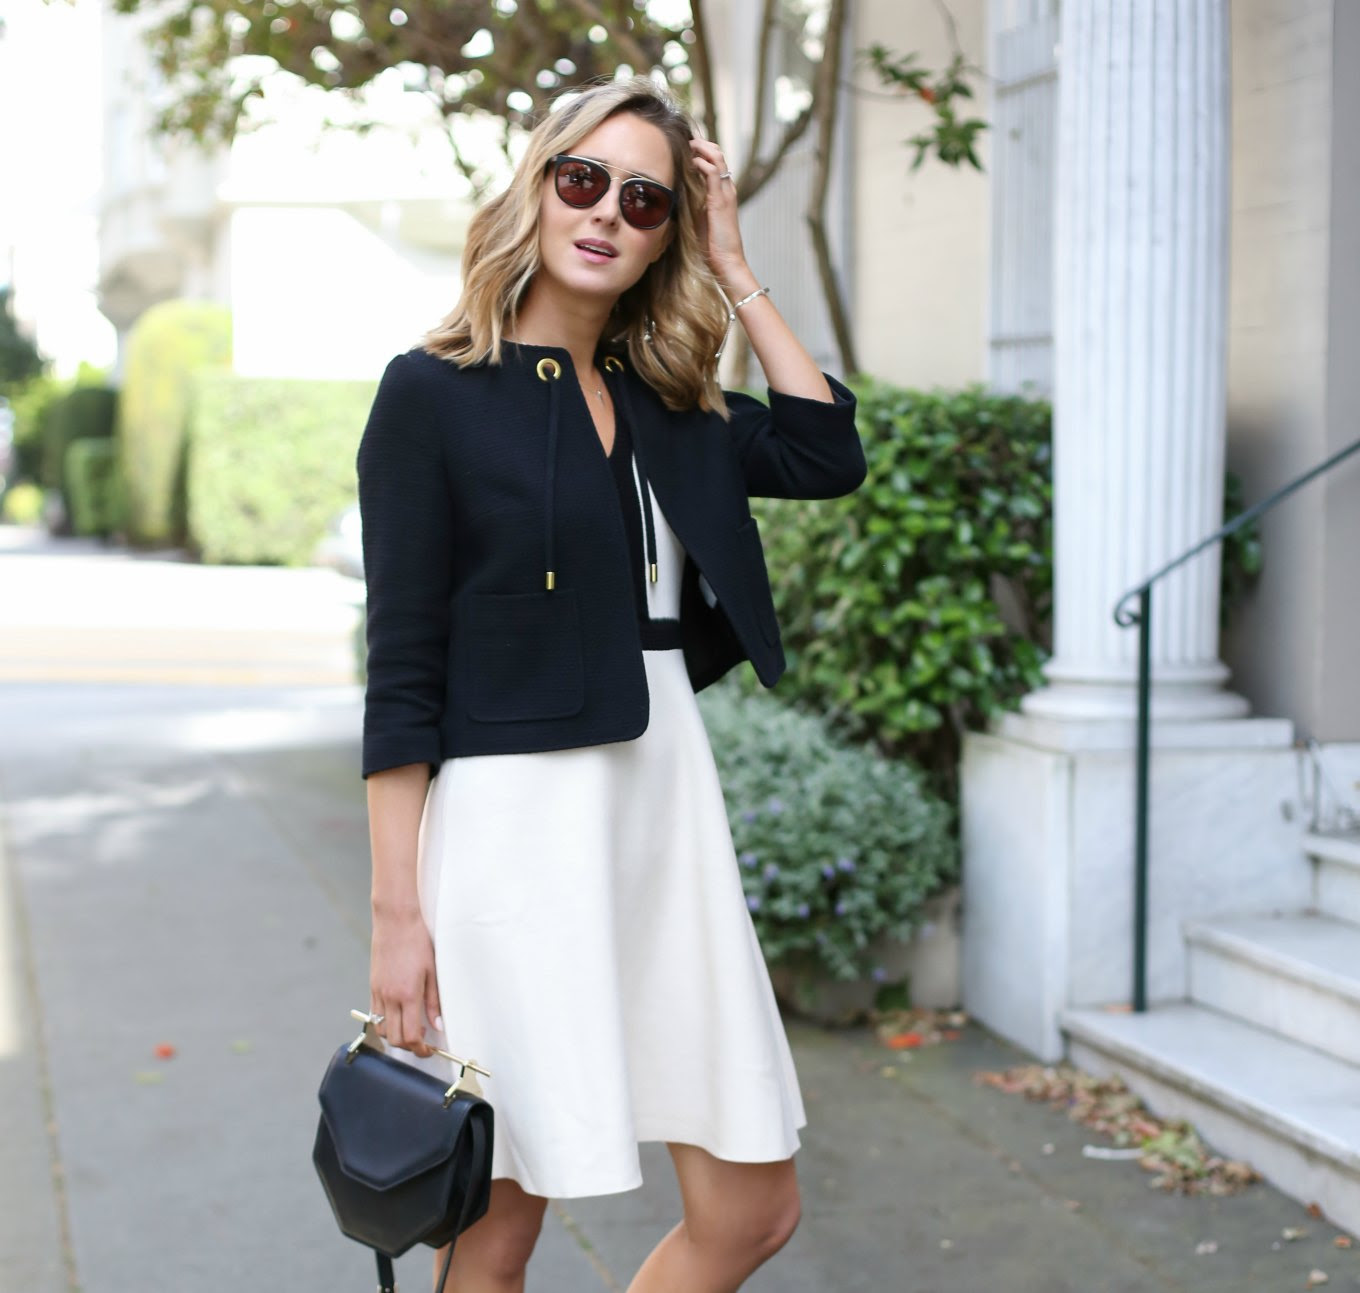 boden-knit-flare-dress-black-white-short-sleeve-work-wear-office-style-fashion-blog-san-francisco-sf-classic-professional3